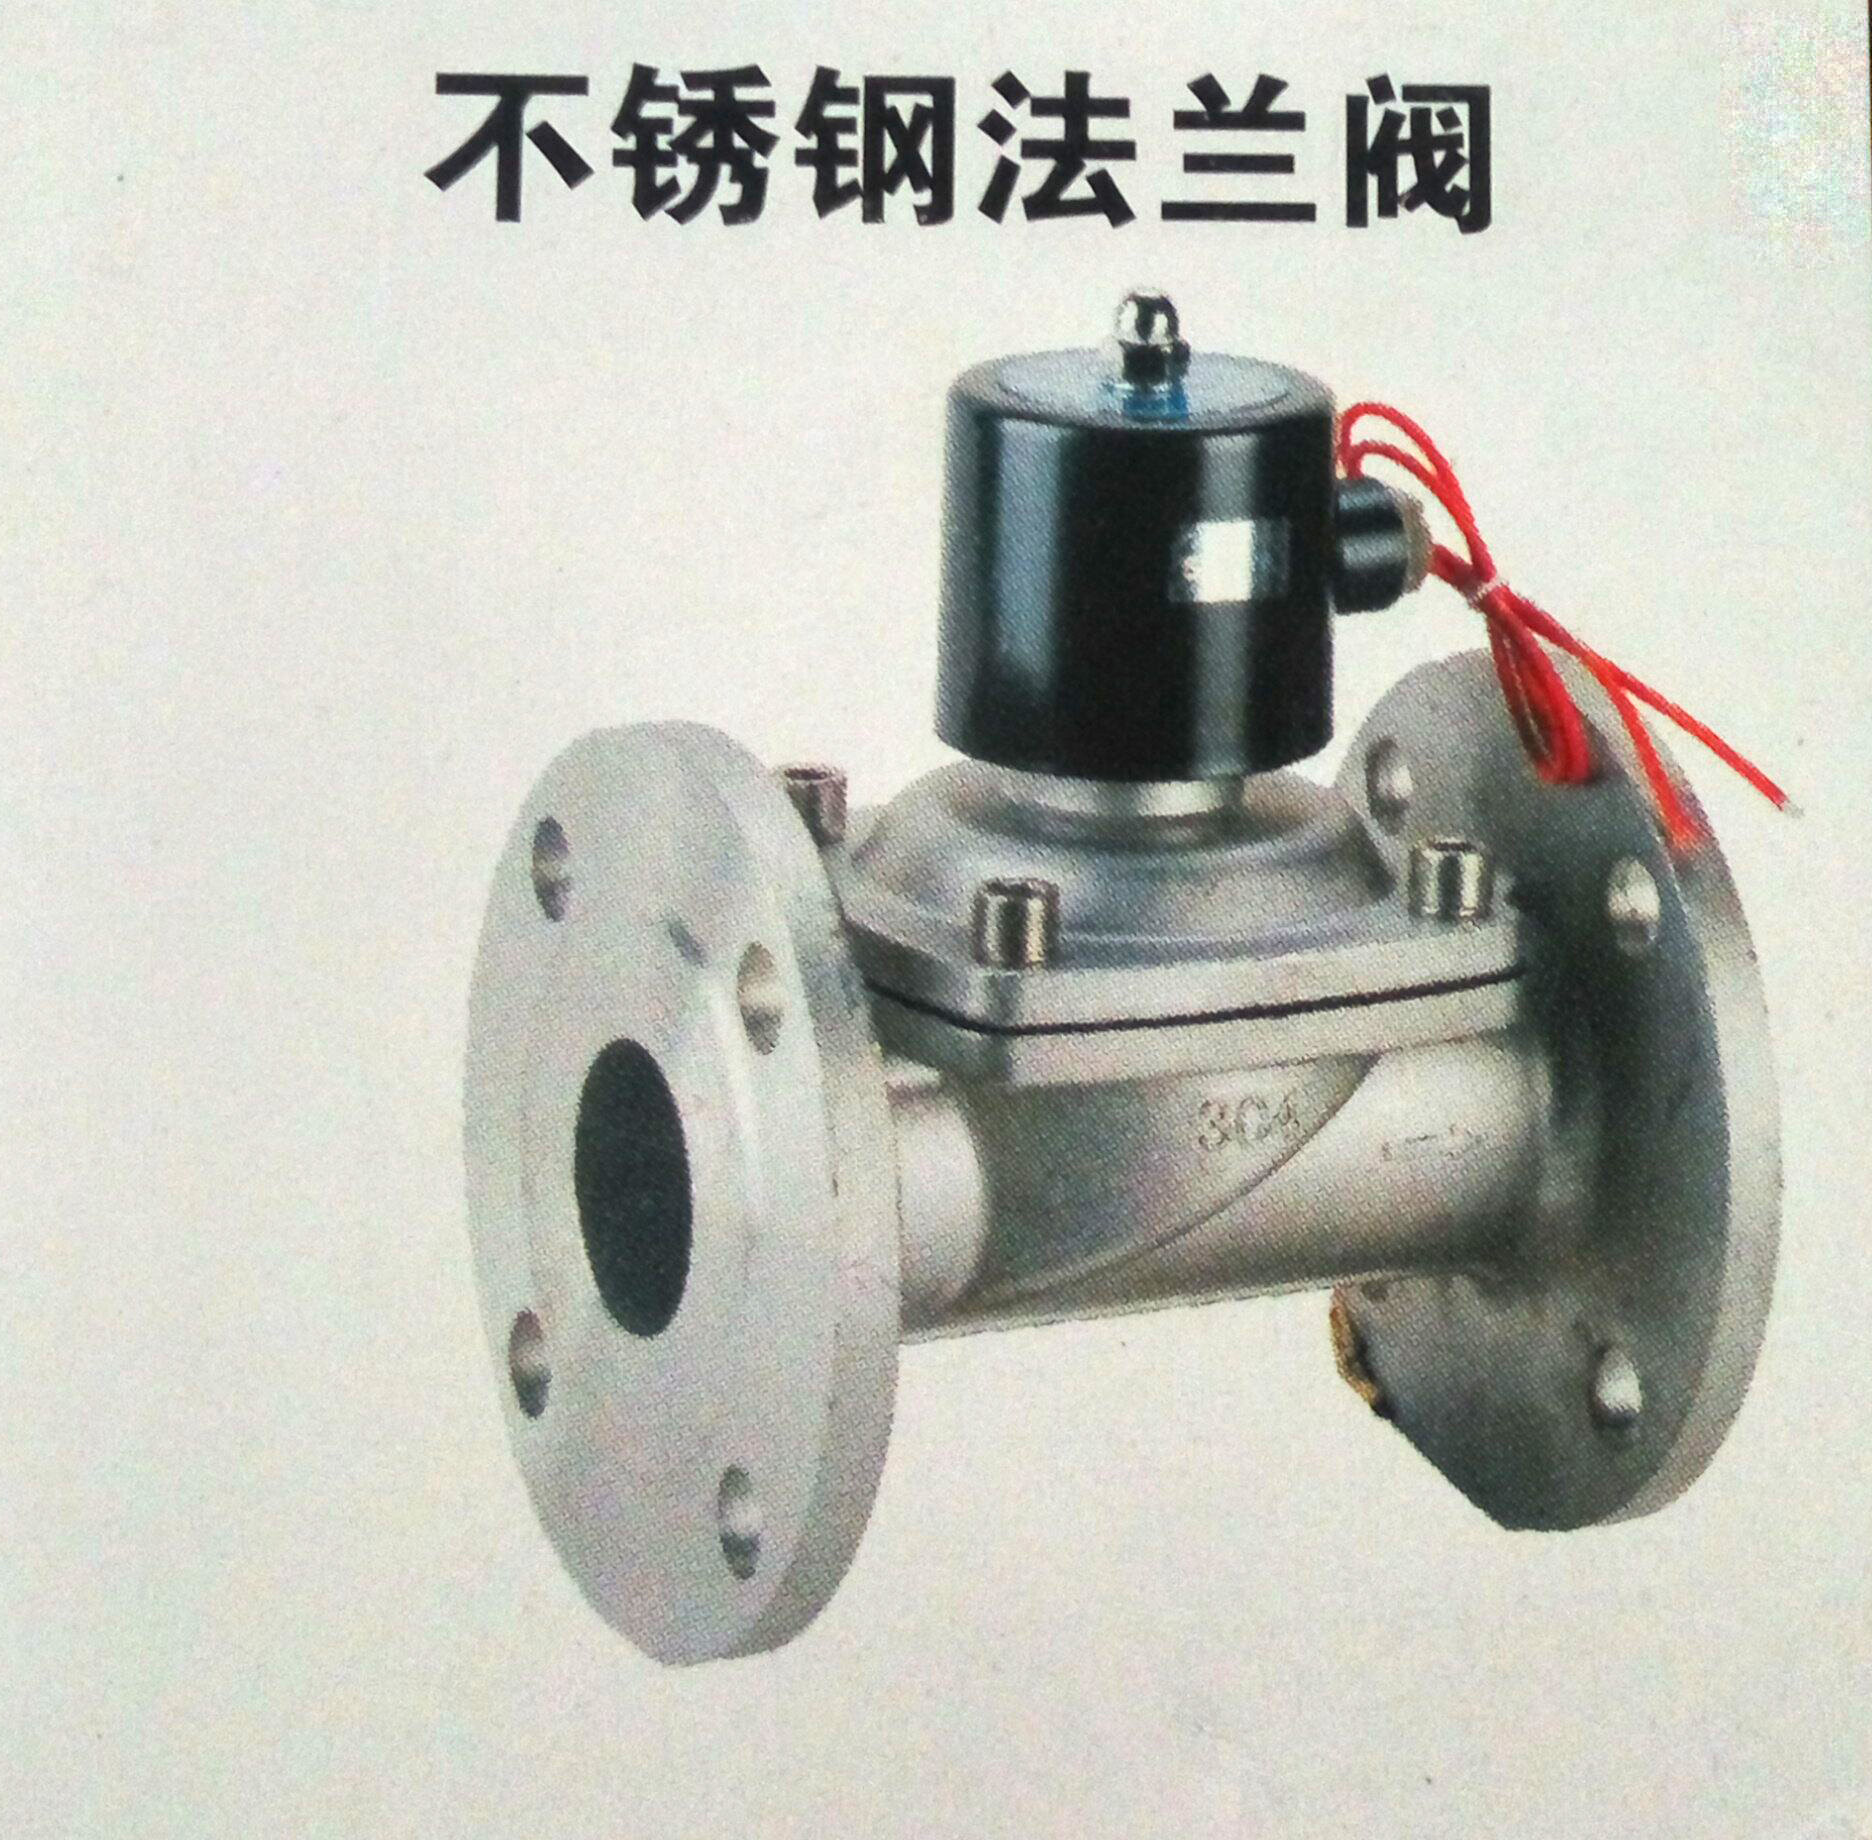 Stainless steel flange water valve 4/6 /1/1.2/1.5/2 inch / acid base, corrosion resistance, high temperature solenoid valve